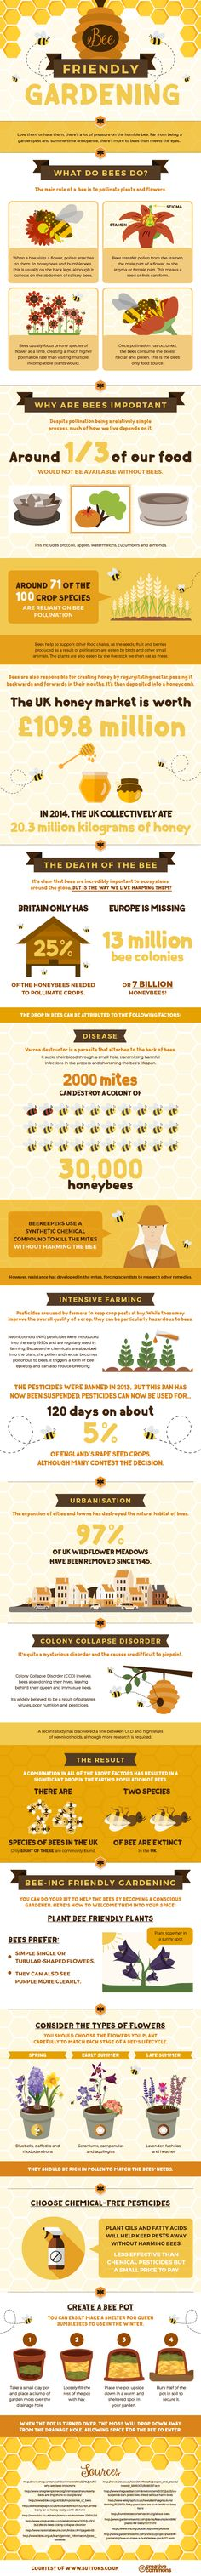 Bee Friendly Gardening #infographic #Bee #Gardening